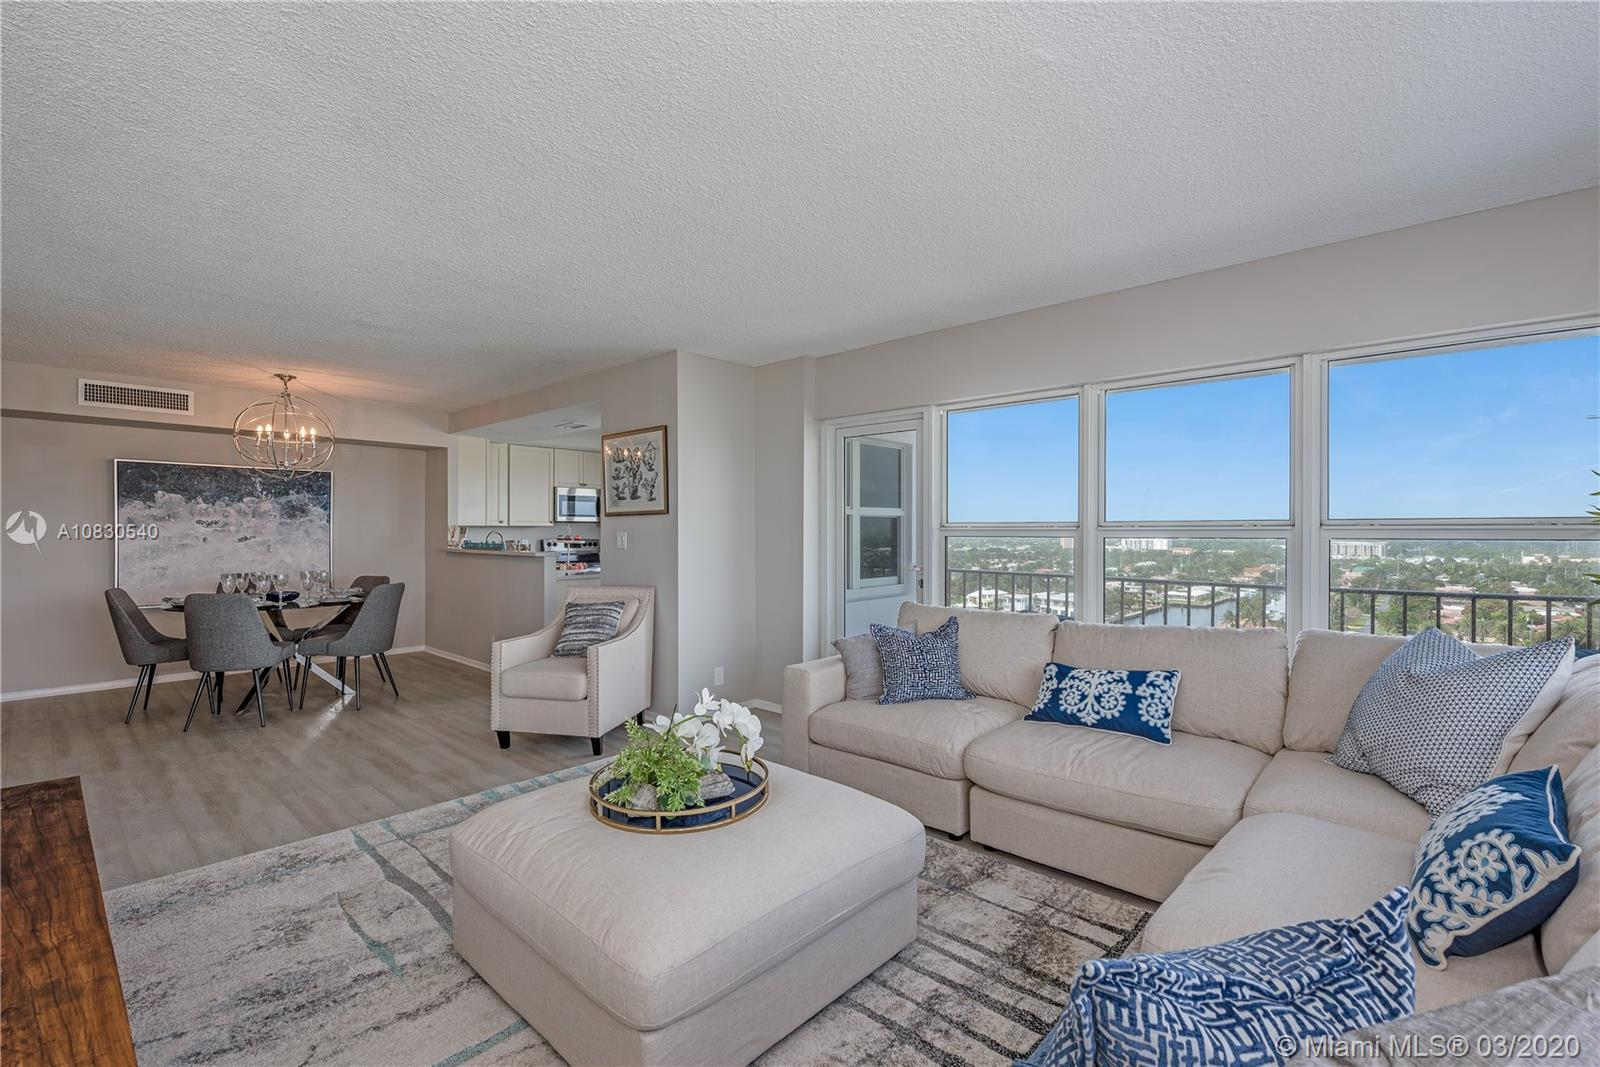 Sunlit, updated amazing corner unit with Intracoastal views, move-in ready. Enjoy your large balcony